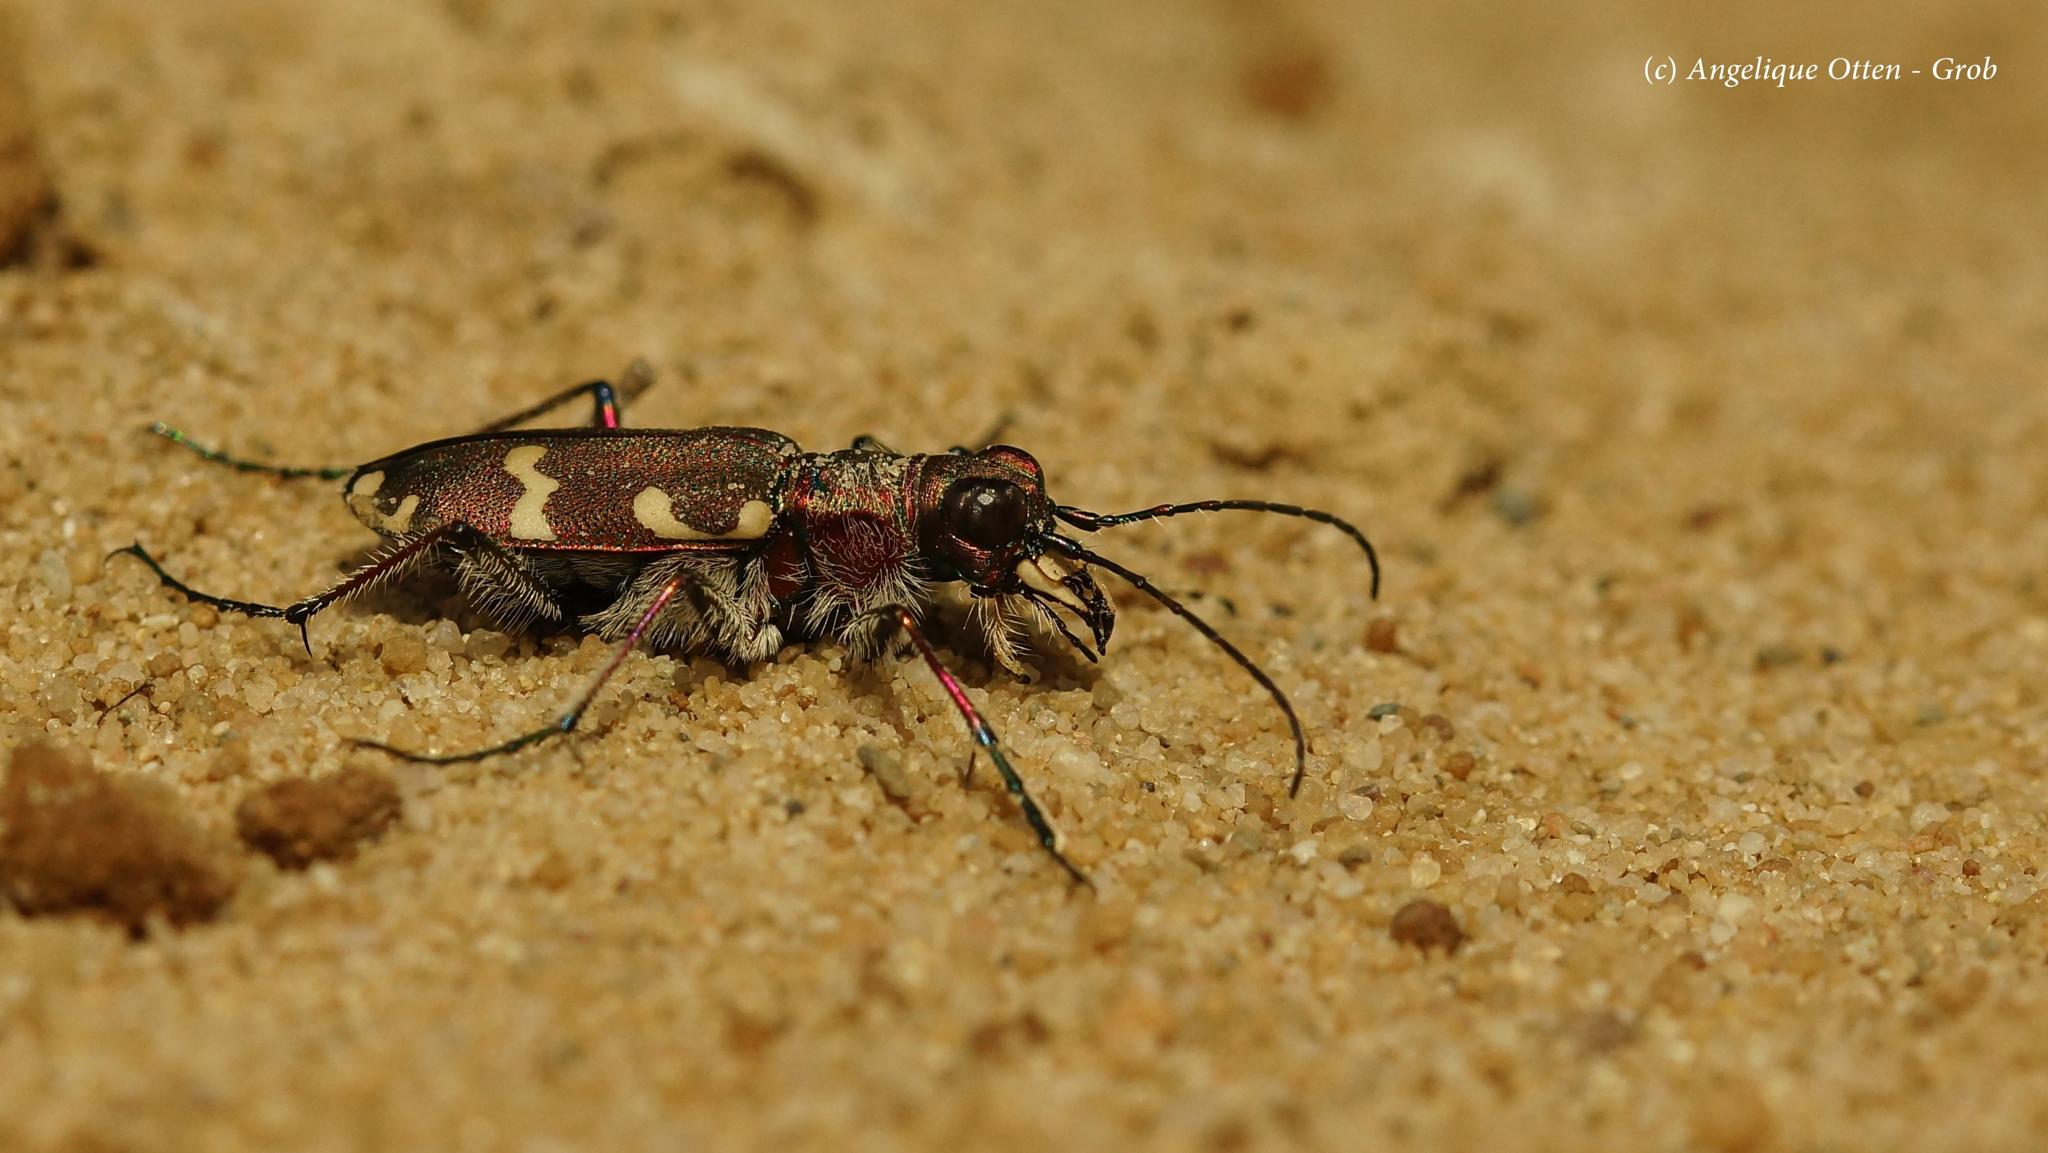 Northern dune tiger beetle by Angelique Otten - Grob